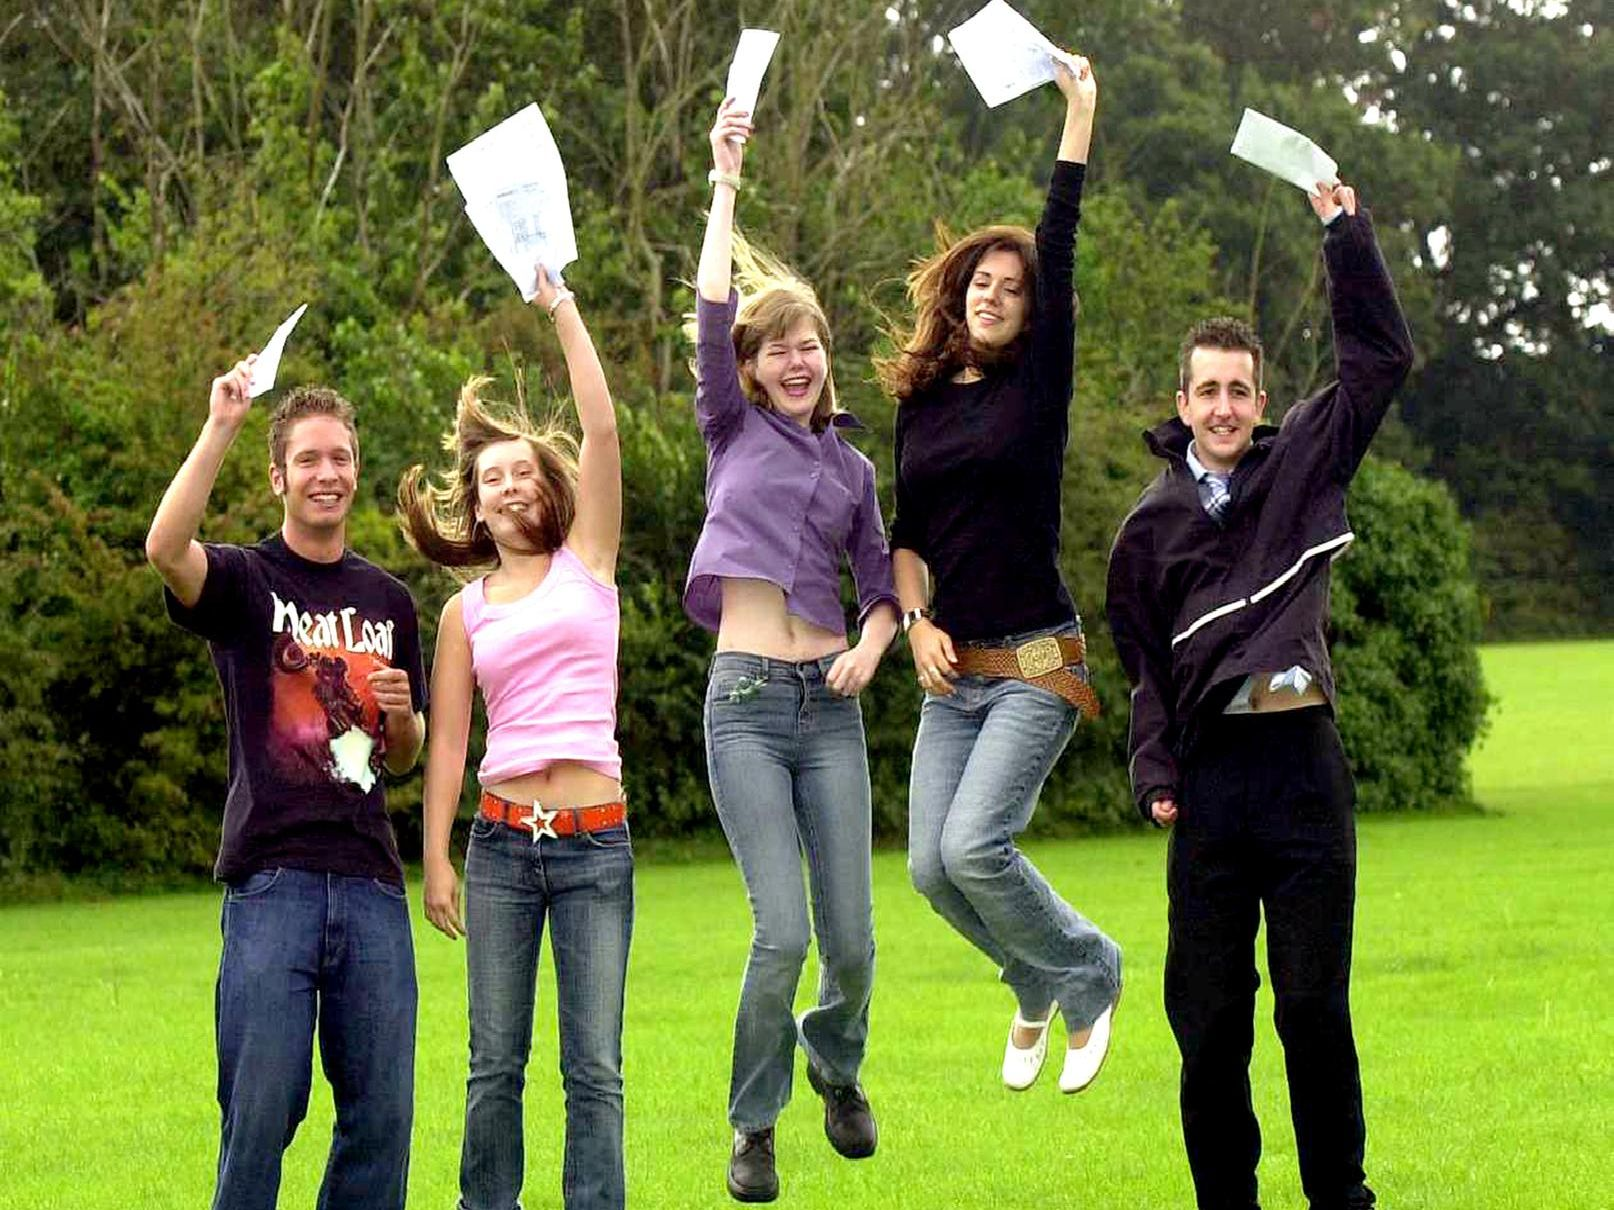 (left to right) Richard Noice (18), Jodi Poulter (18), Charlotte Jones (18), Vikki Farrer (18), and Lee Vaughan (18) celebrate their A-Level results at Fareham College. Picture: Malcolm Wells ( 000-0064 )